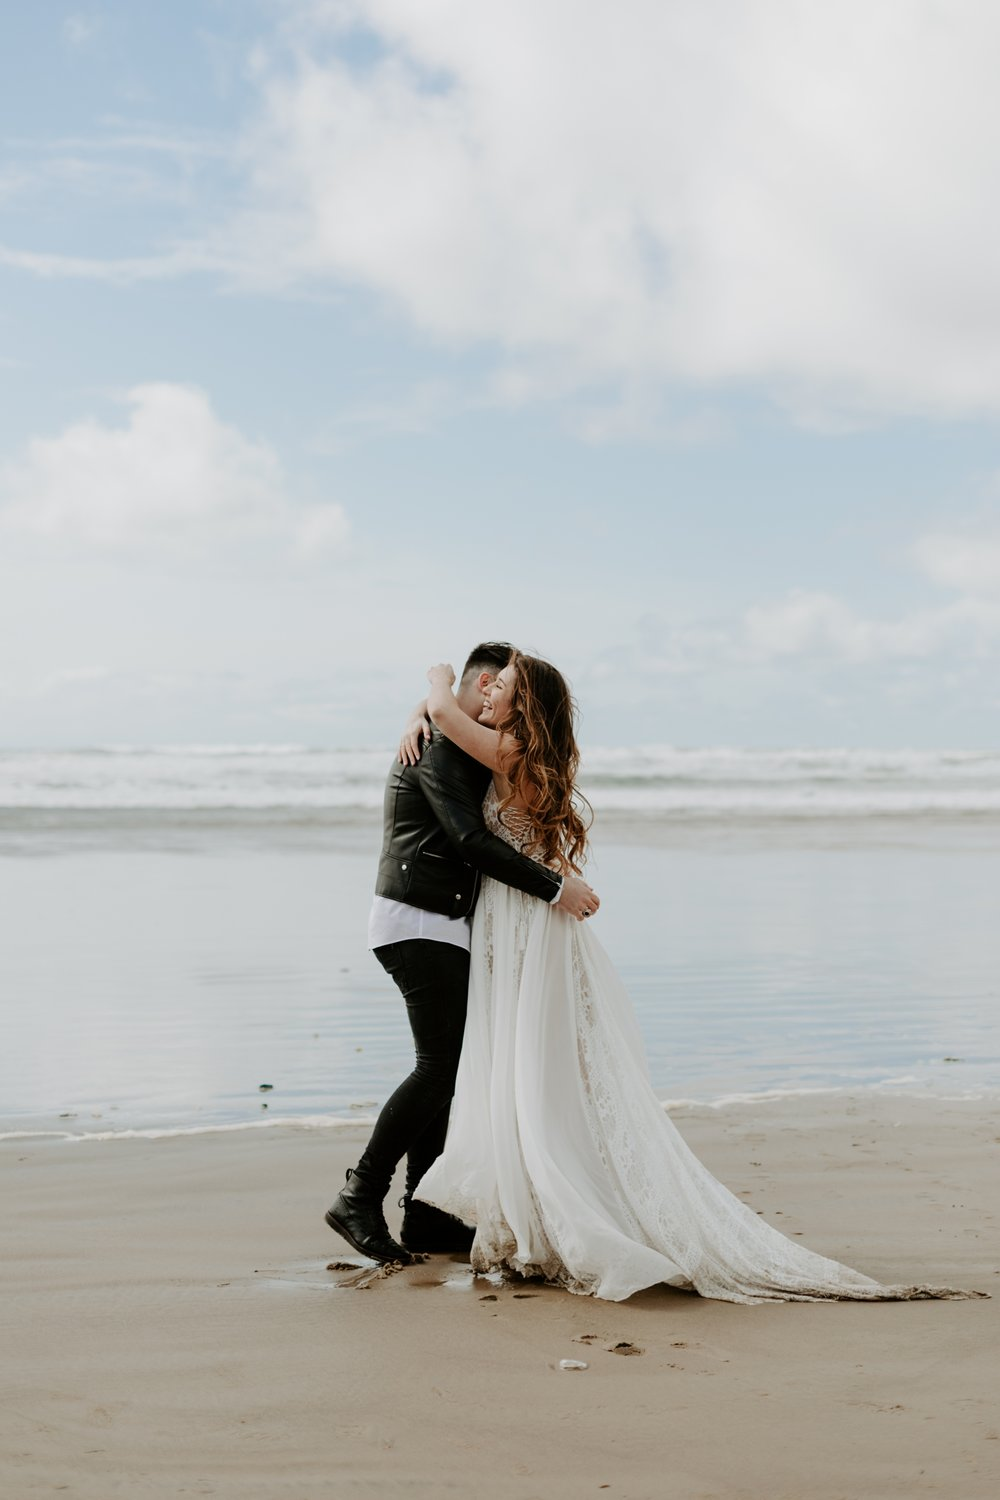 adventurous-cannon-beach-elopement-2018-04-26_0034.jpg